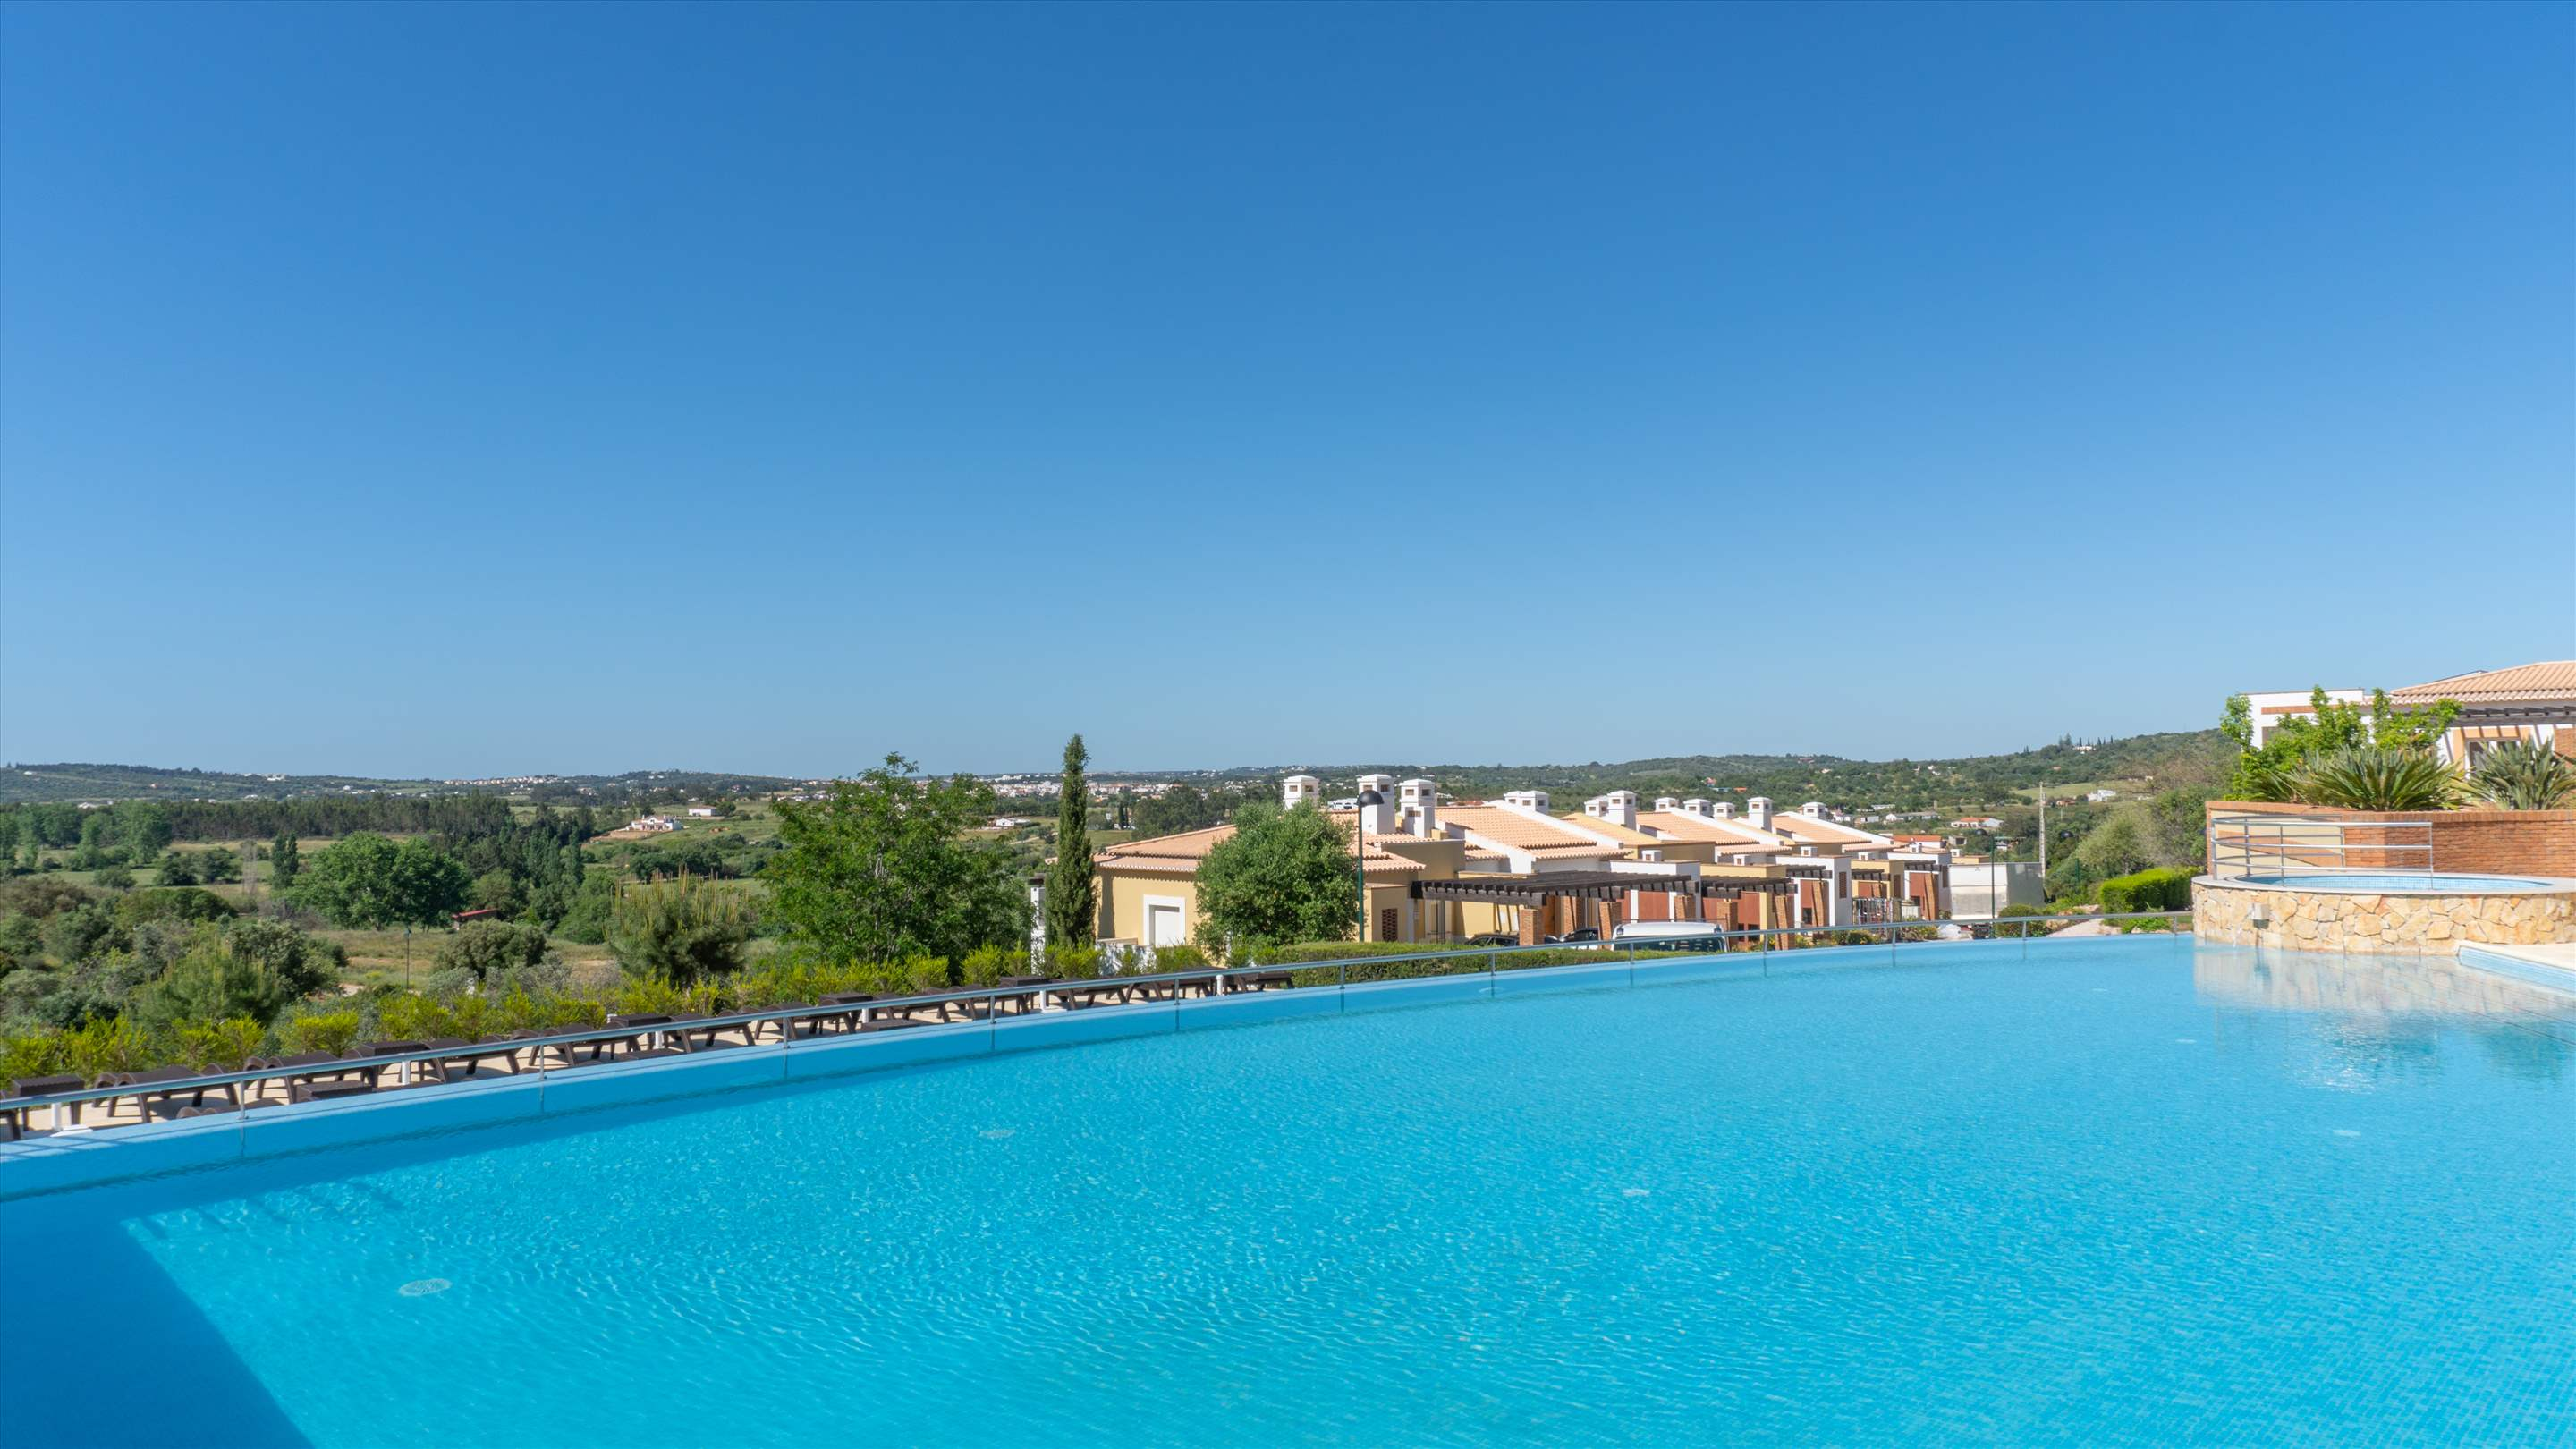 Vale da Ribeira Residences, Three Bedroom Superior Villa, Self Catering Basis, 2 bedroom apartment in Lagos and Praia da Luz, Algarve Photo #2